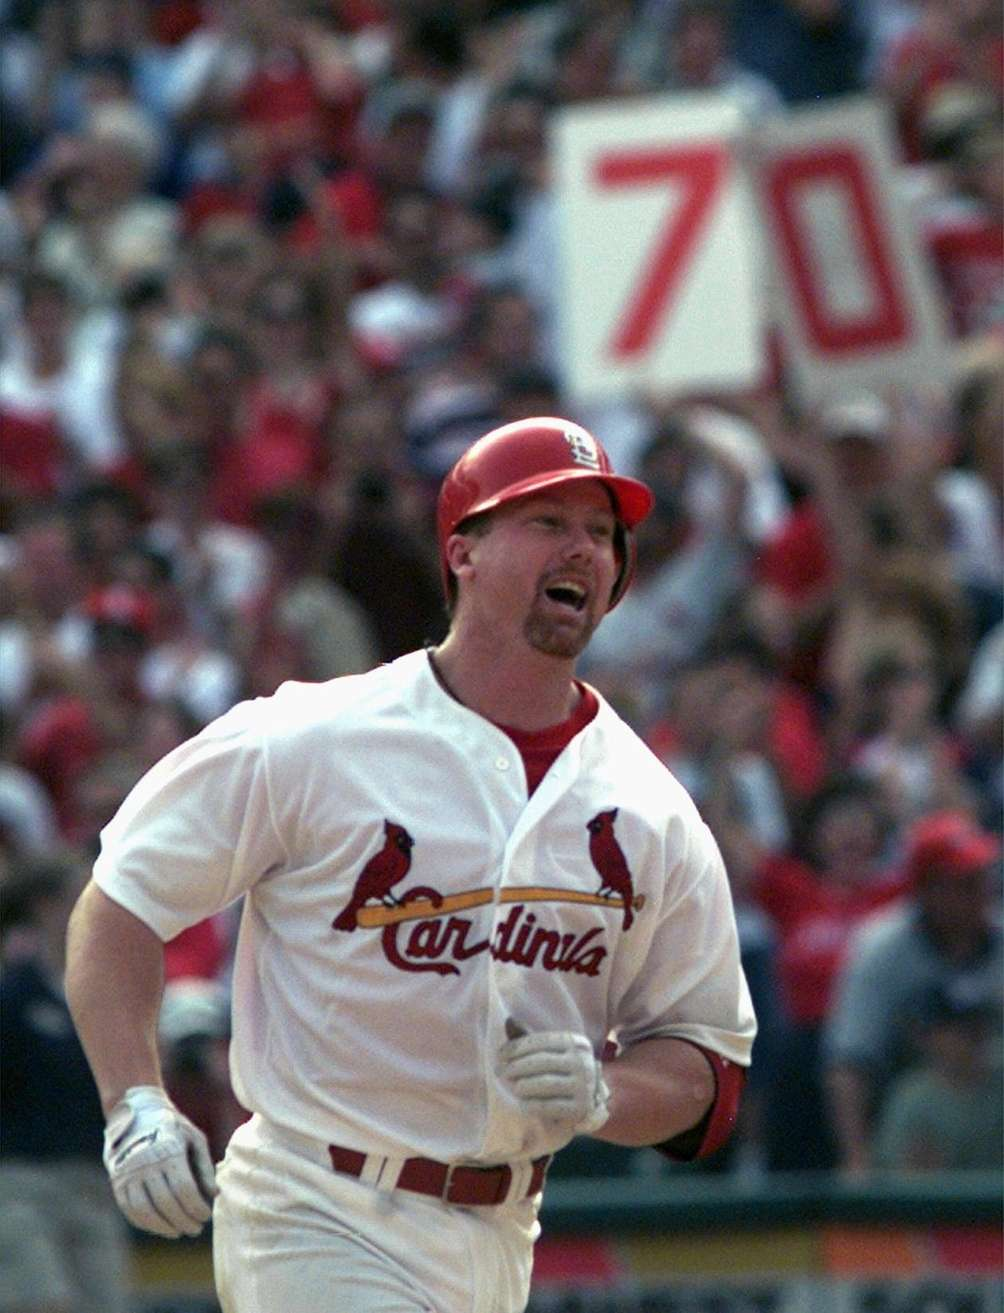 MARK MCGWIRE 1998, St. Louis Cardinals 70 home